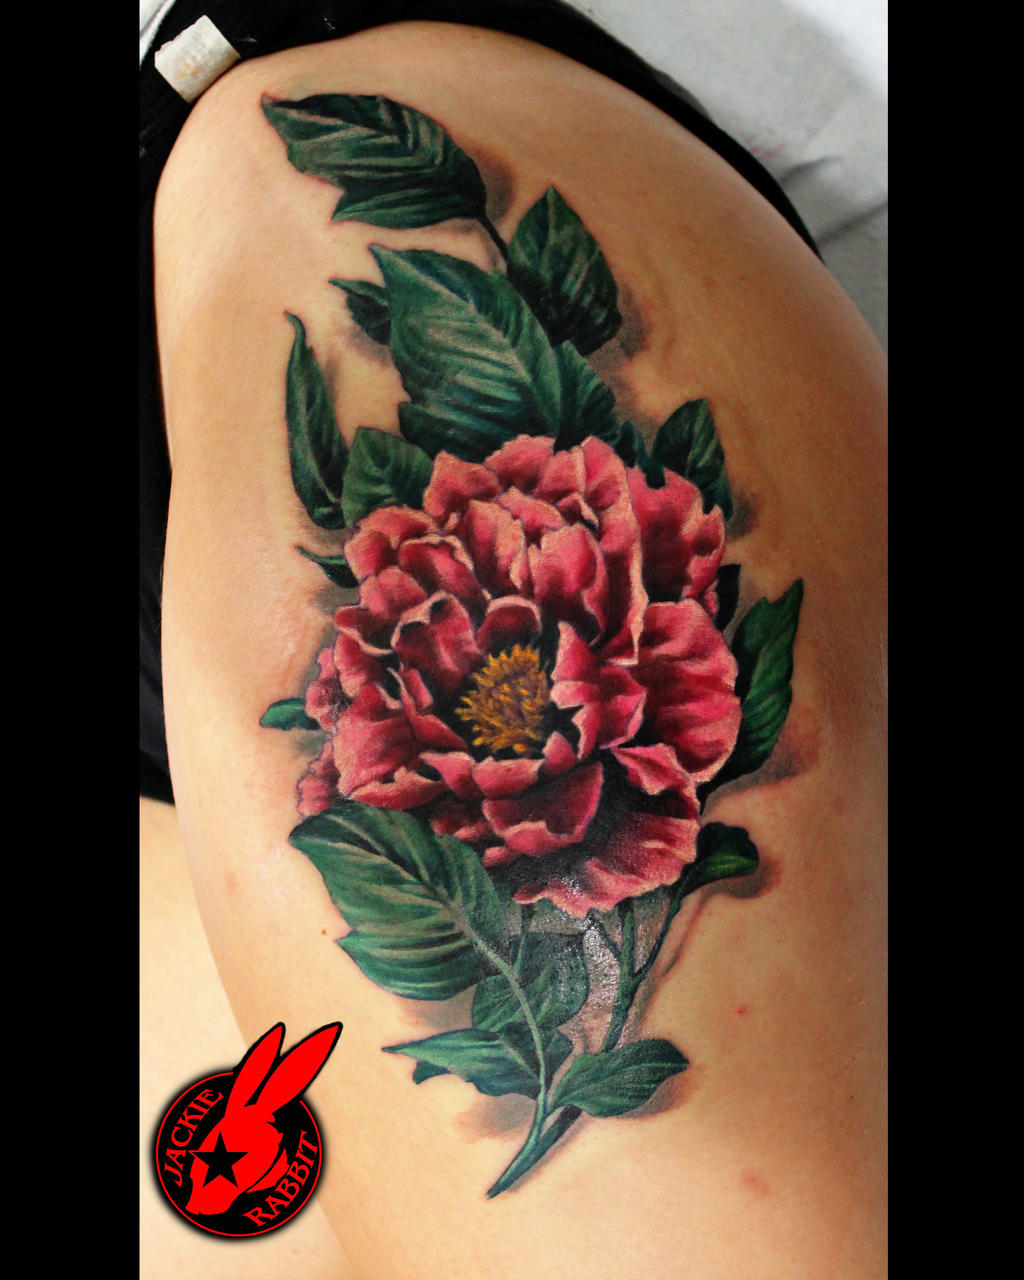 Realistic Flower Tattoo Designs: Realistic Hip Flower Tattoo By Jackie Rabbit By